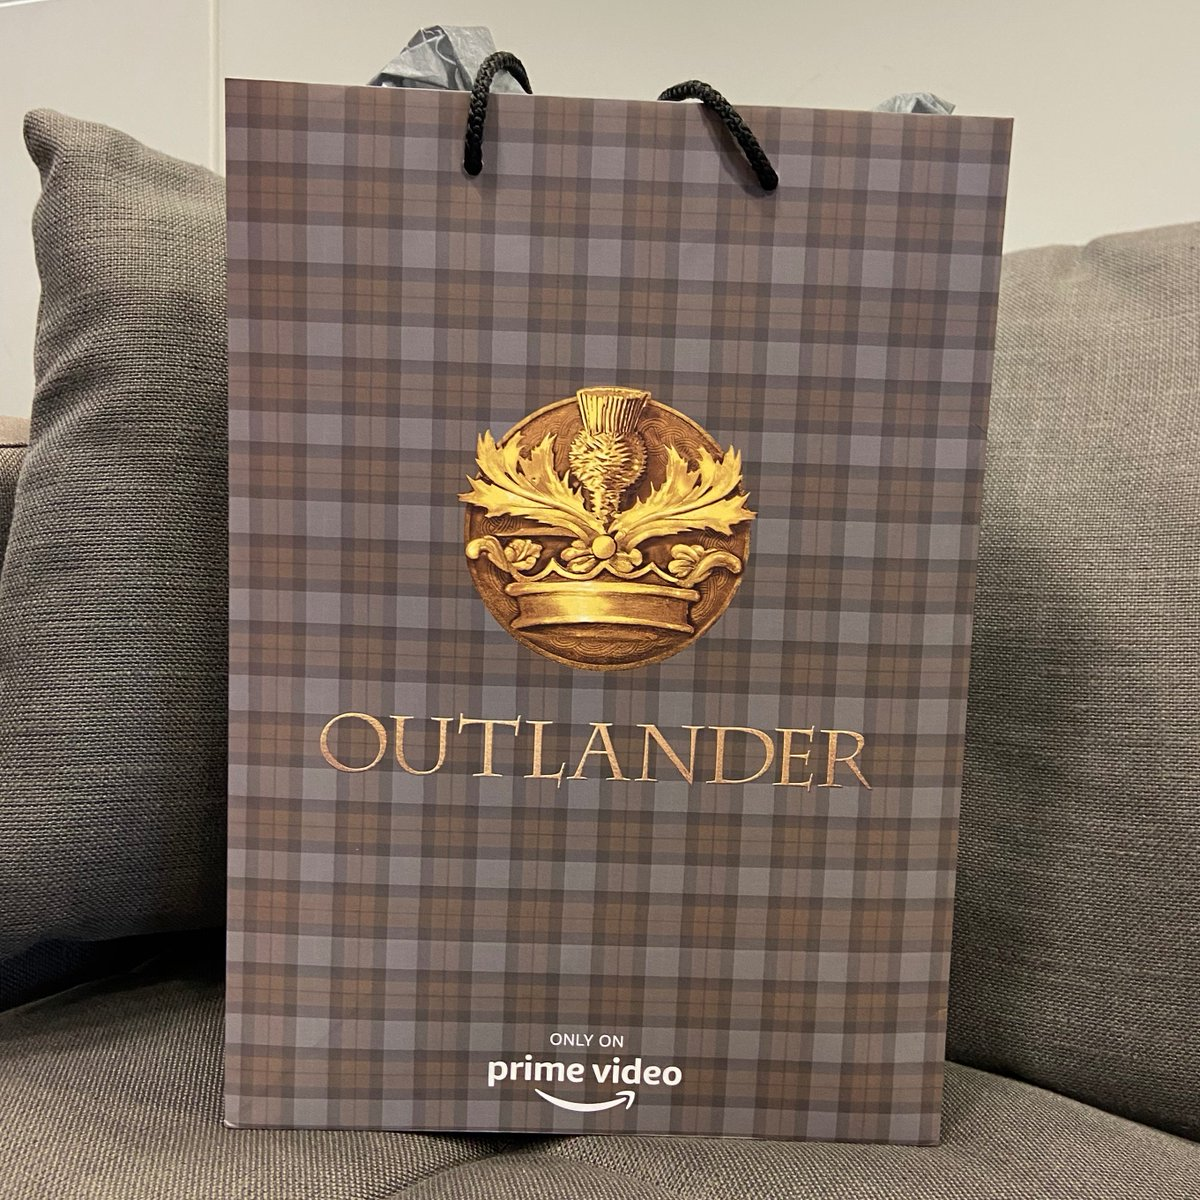 COMPETITION TIME!   To celebrate the Season 5 launch of #Outlander on Prime Video and #RandomActsOfKindnessDay, we have the ultimate fan bundle to giveaway!  For your chance to #WIN,  follow @sonypicsathome, RT and let us know why you love Outlander!